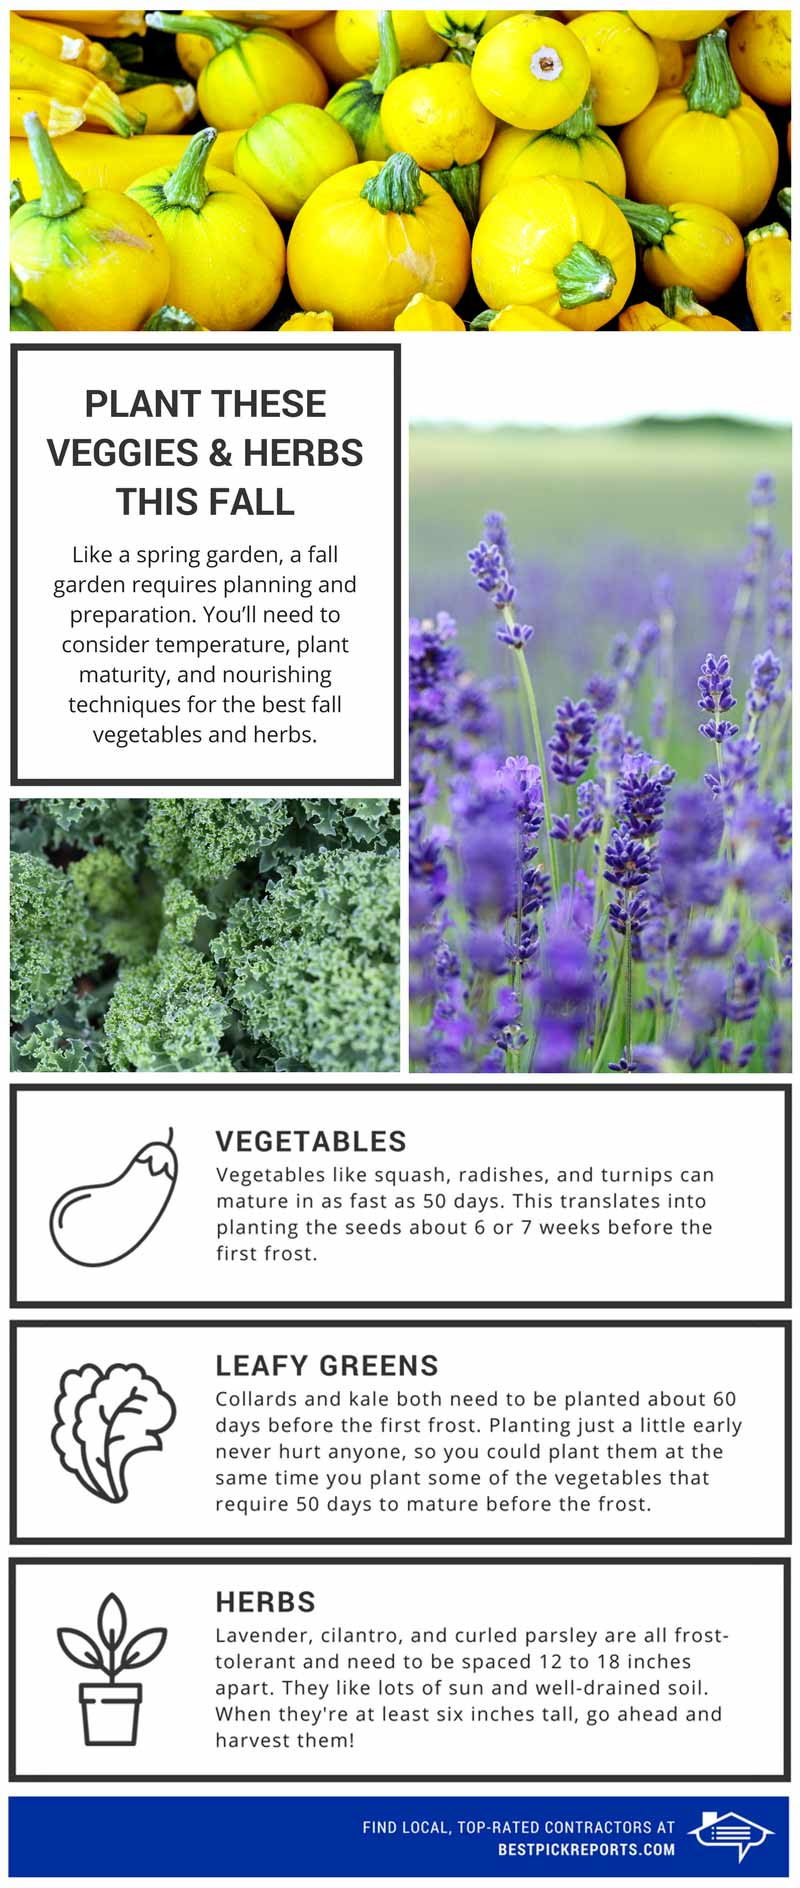 Planting fall veggies and herbs infographic